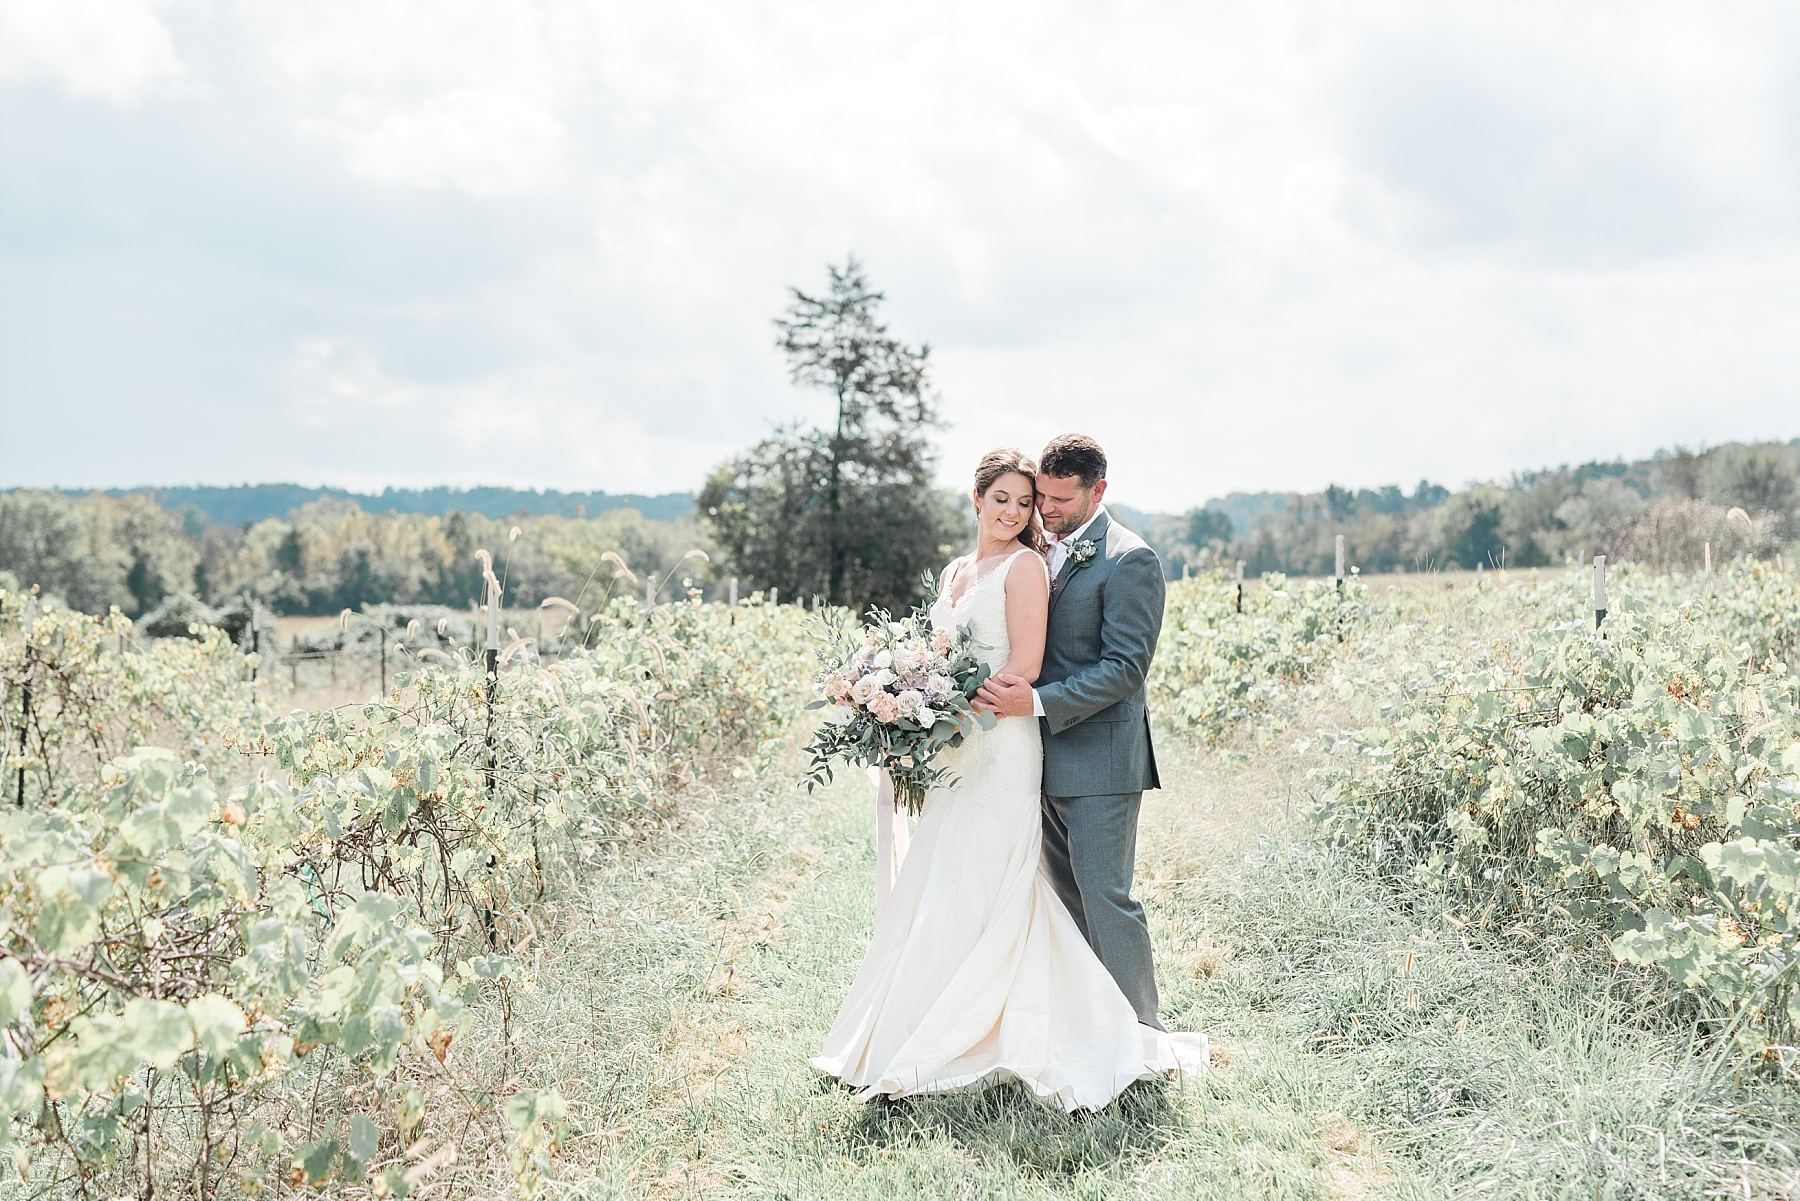 Fine Art Sunset Themed Wedding in Autumn at Dodson Orchards by Kelsi Kliethermes Photography_0007.jpg